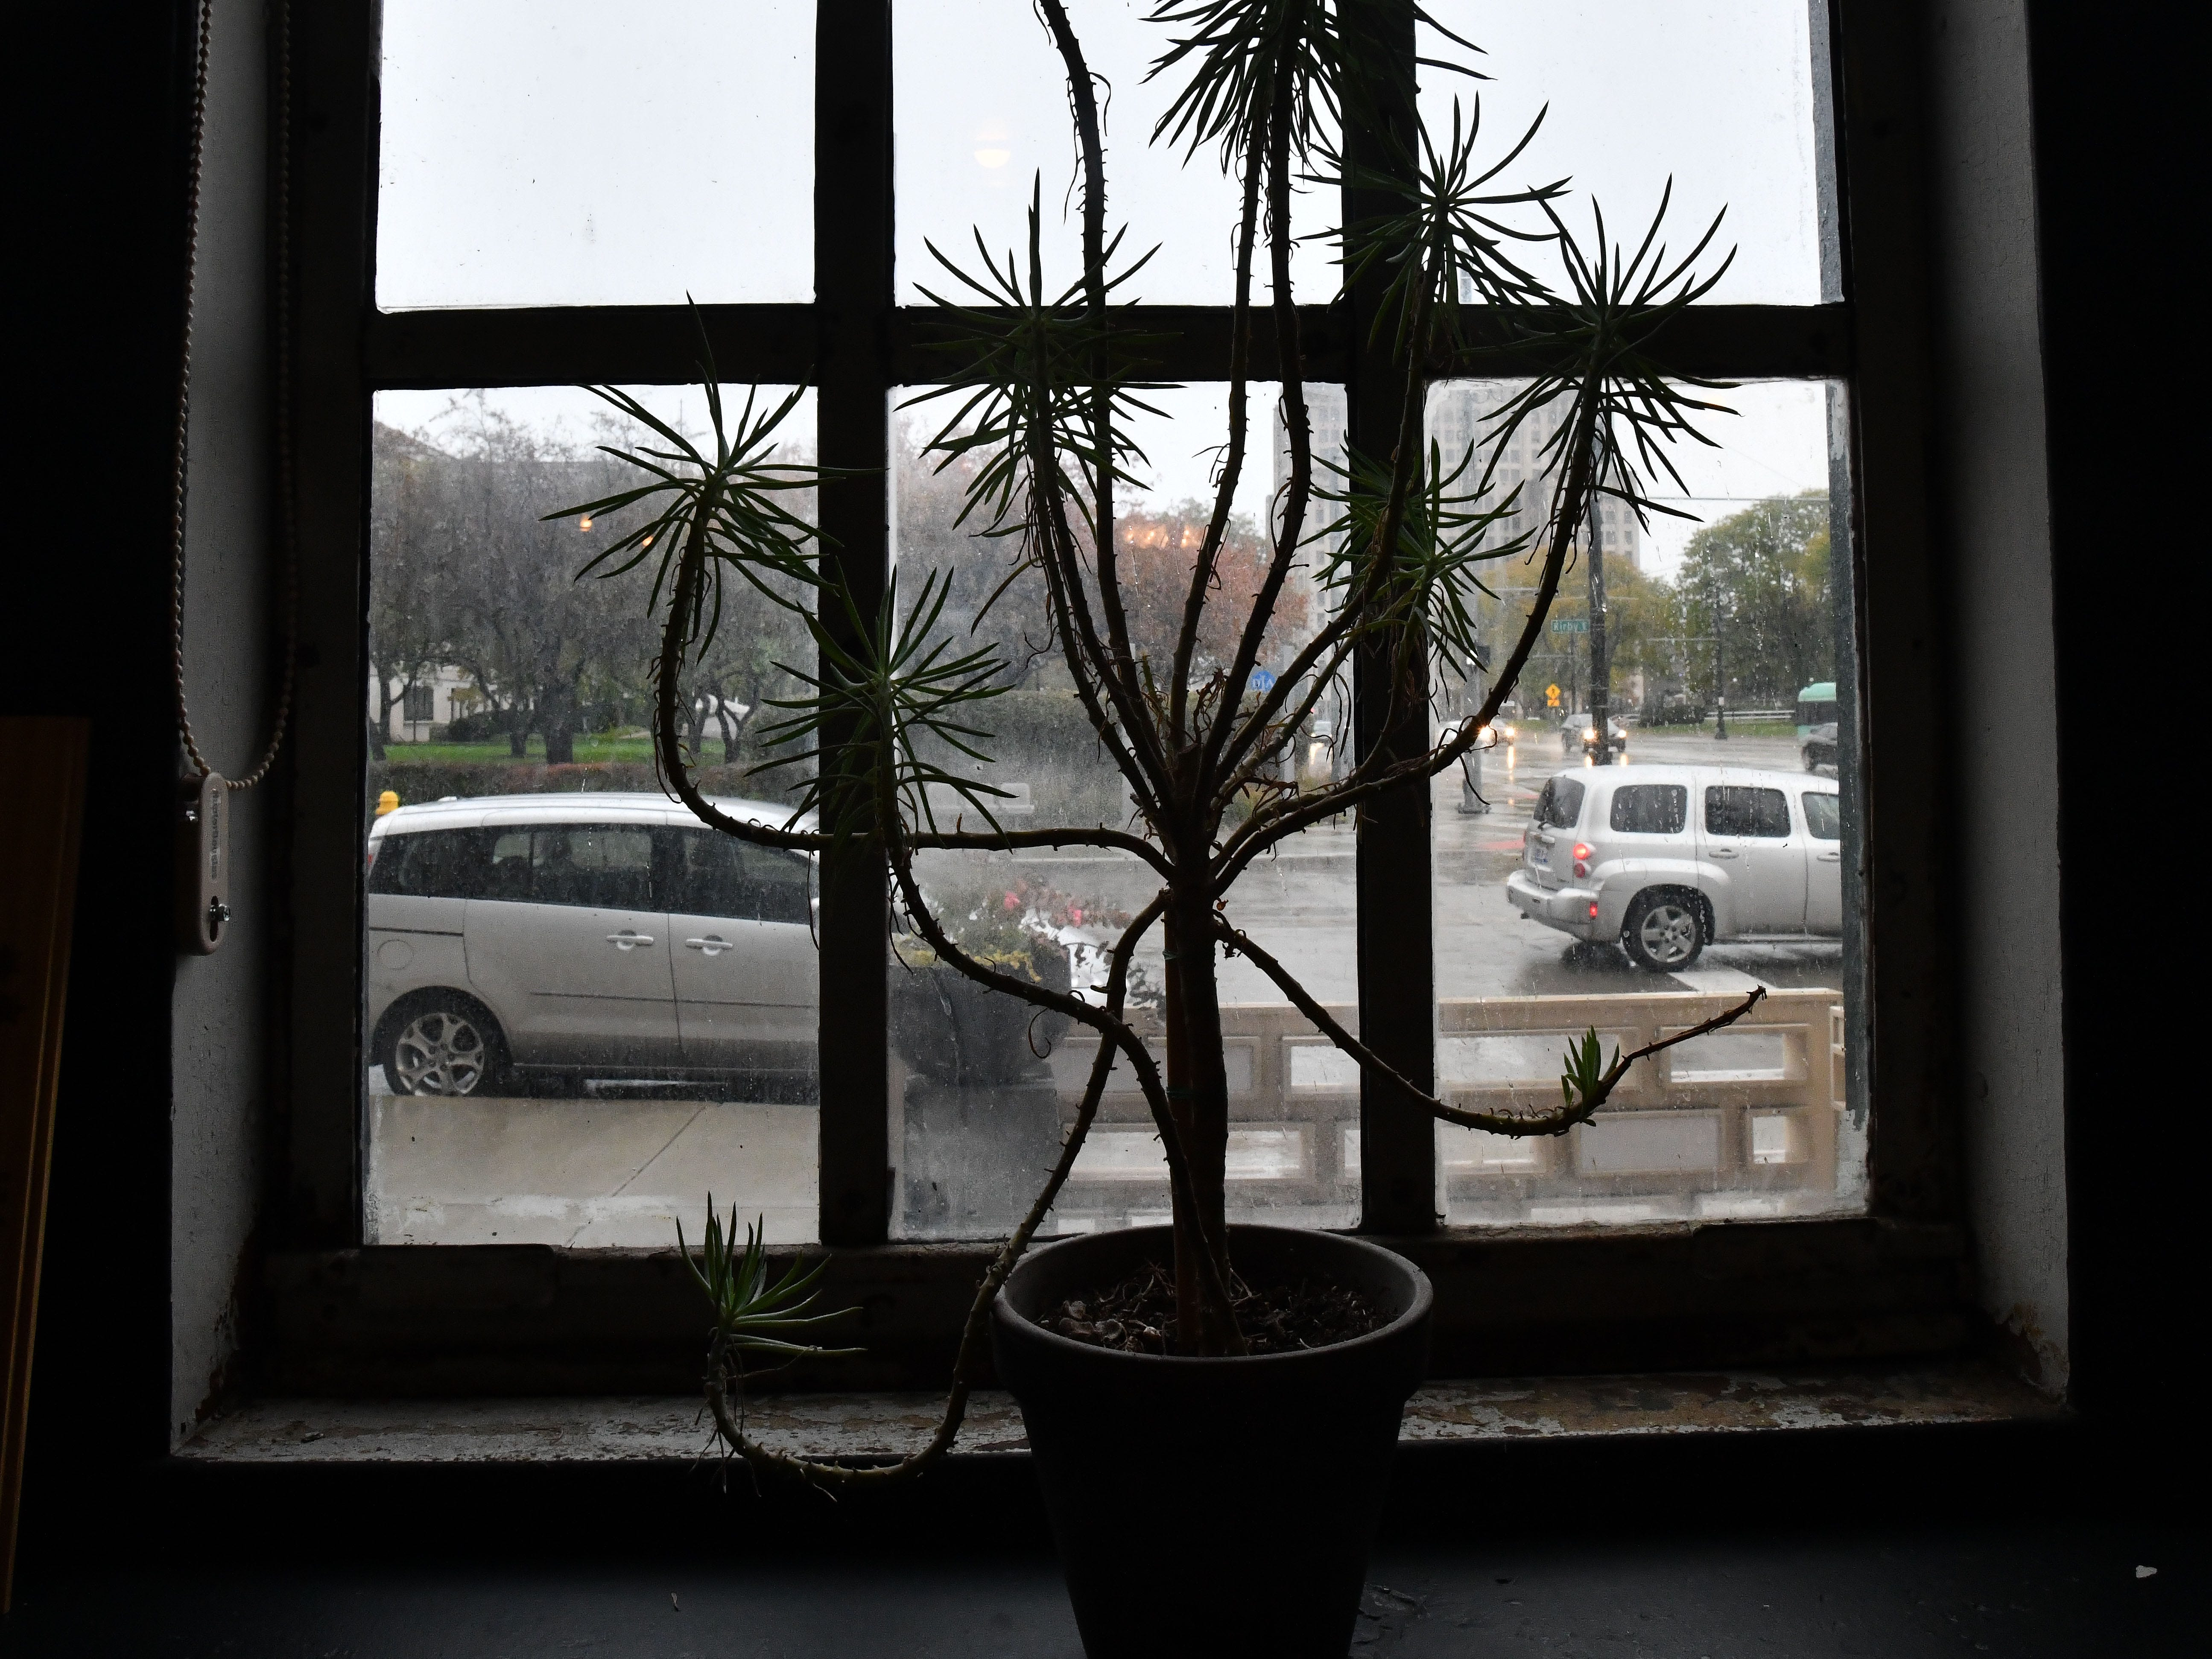 A window looking out onto Kirby and Woodward.